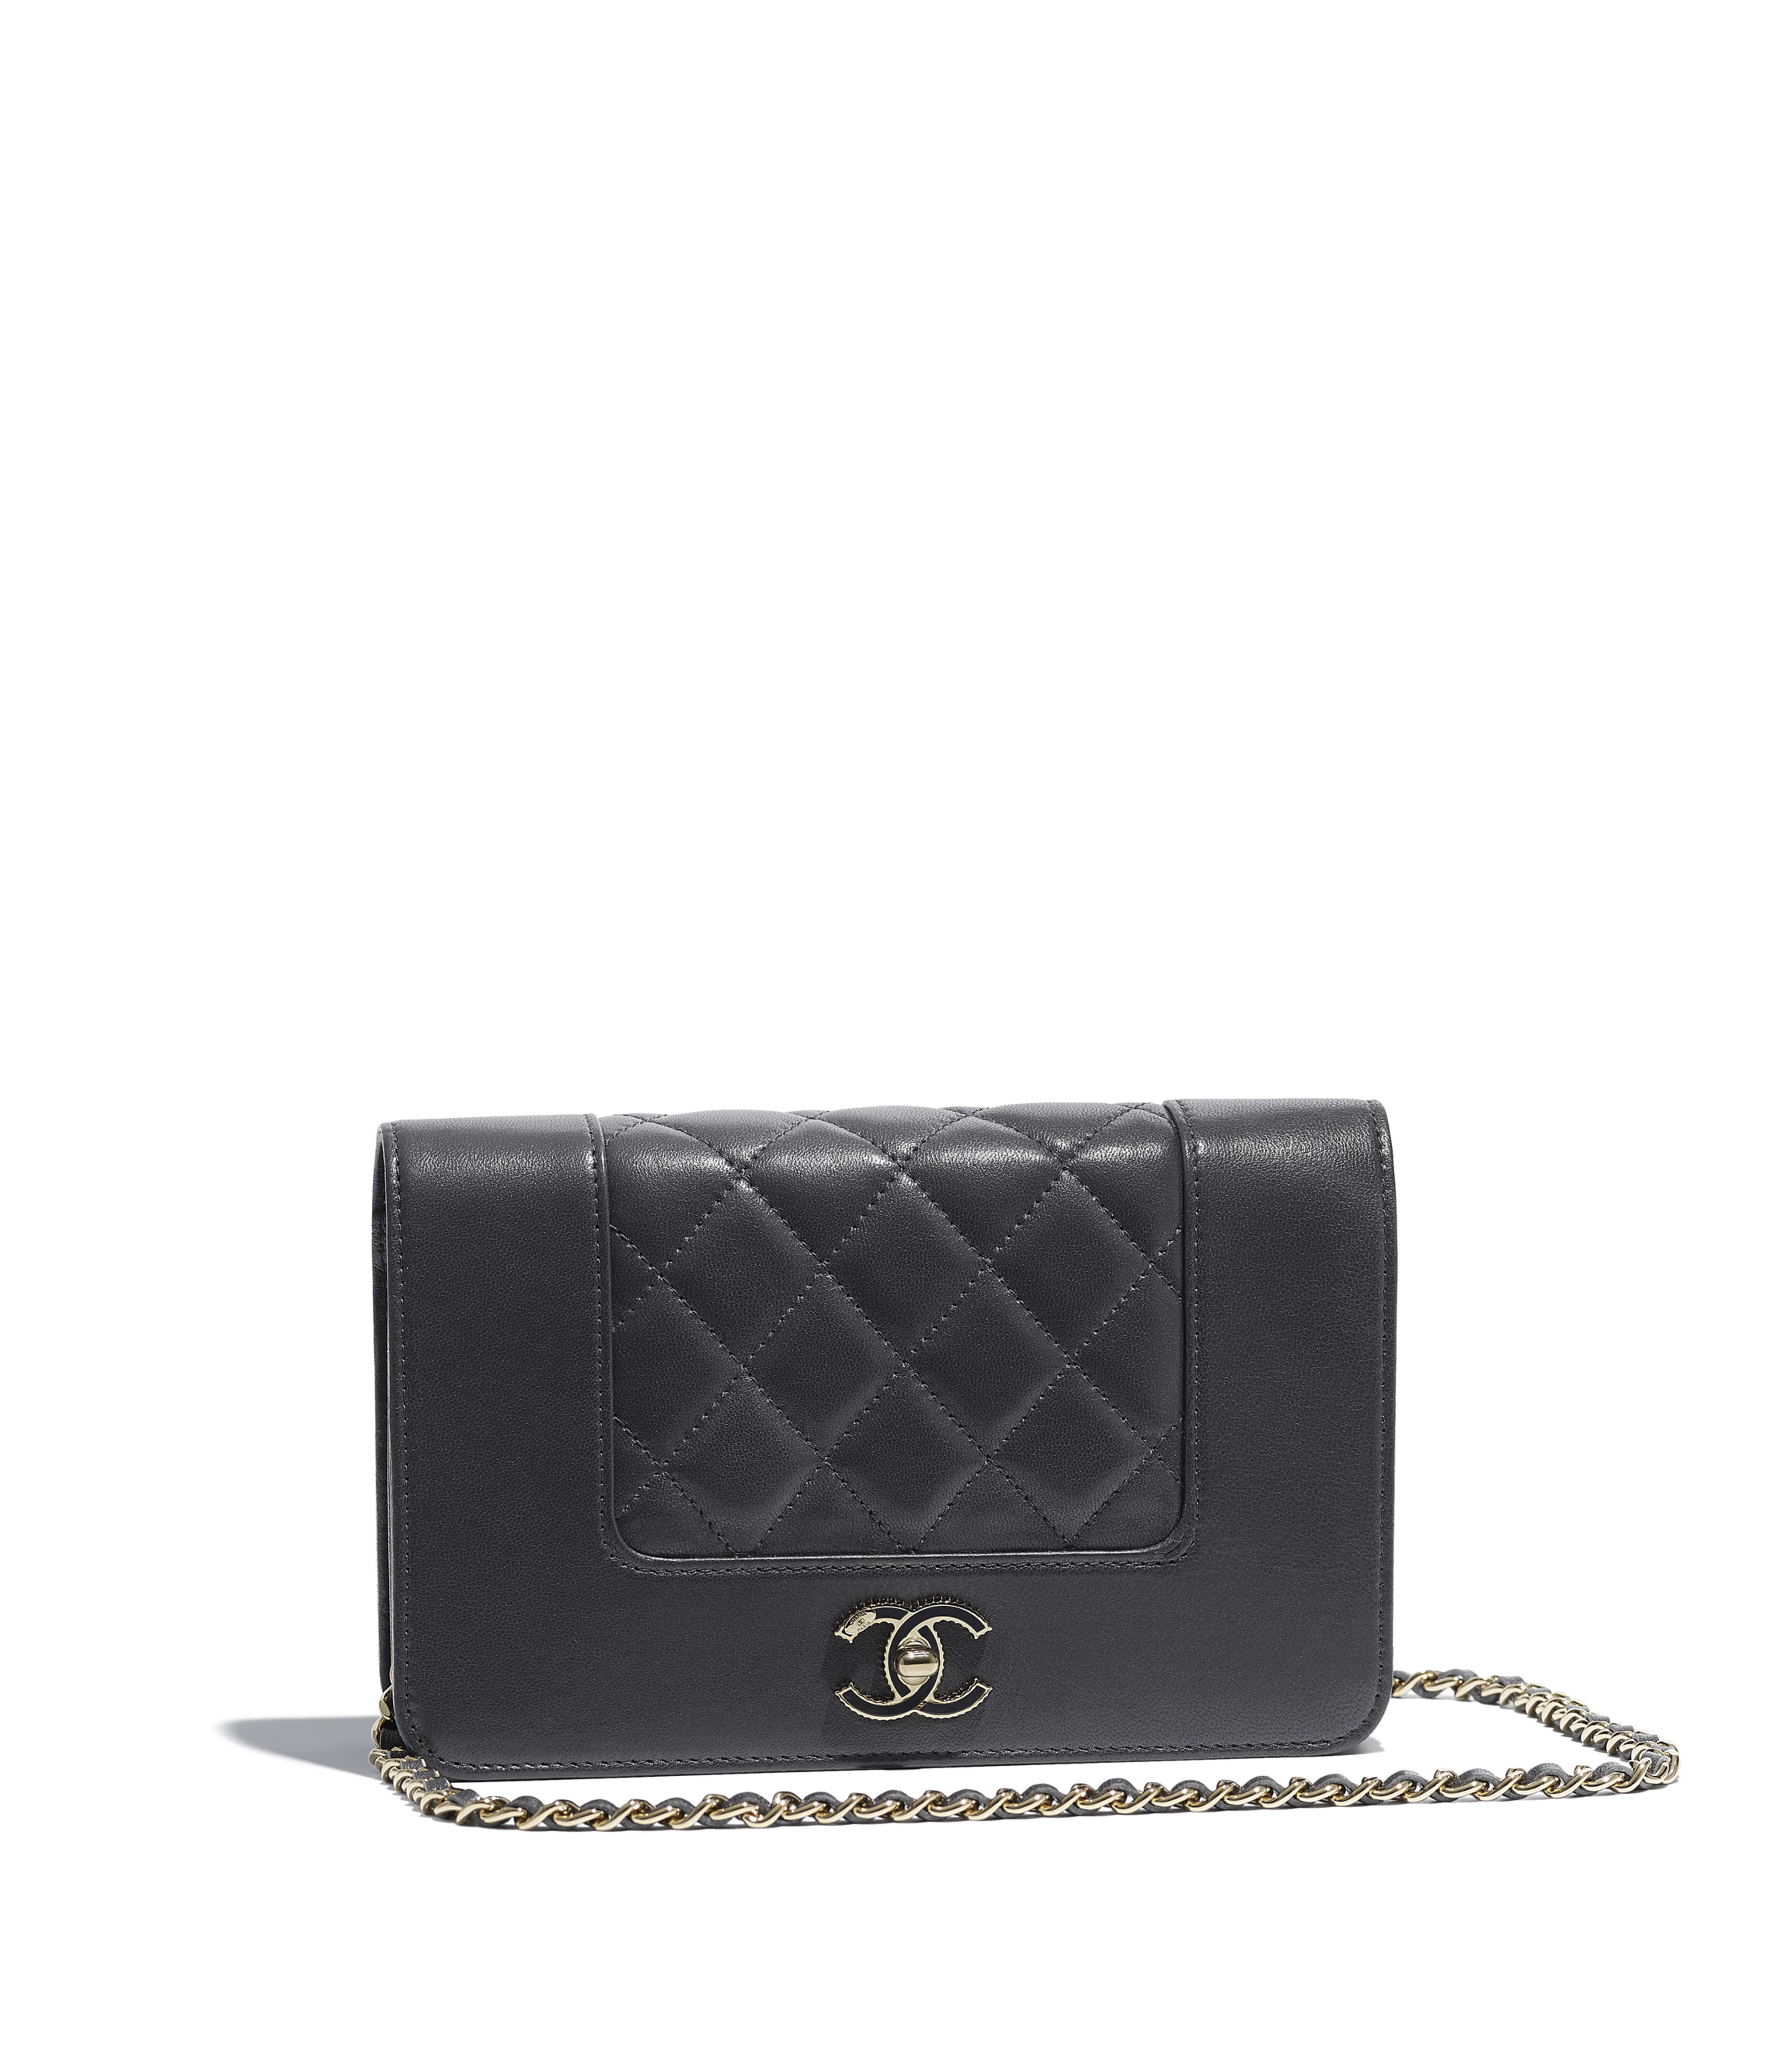 11be90681e4f0 Chanel Black Wallet On Chain - Best Photo Wallet Justiceforkenny.Org